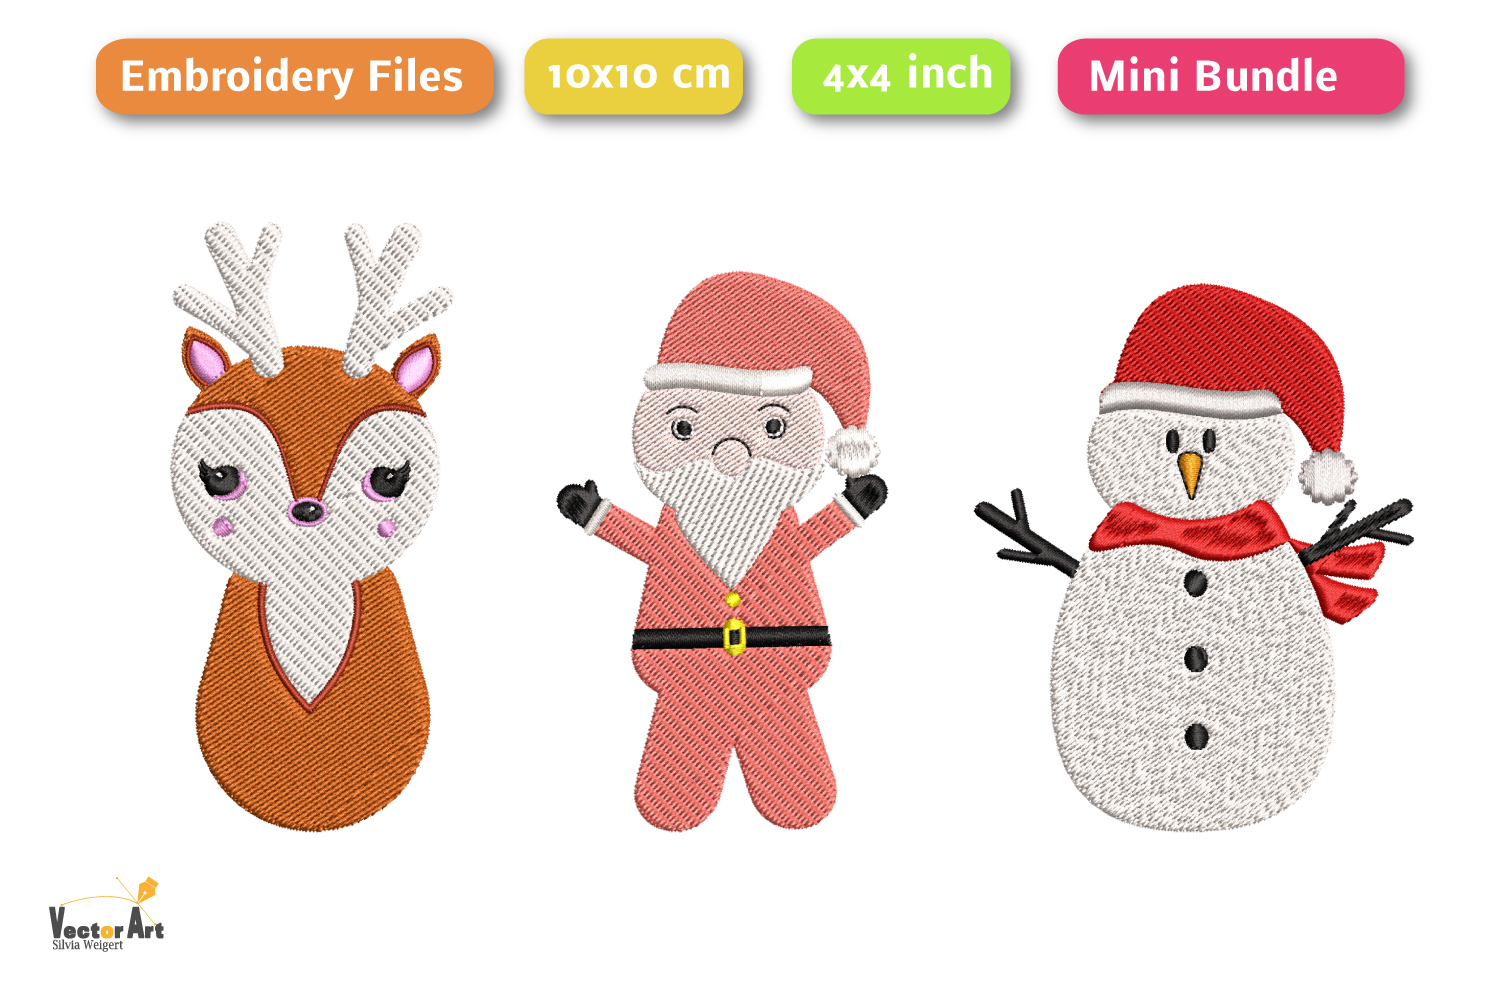 Christmas Mini Bundle - 3 Embroidery Files - 4x4 inch example image 2